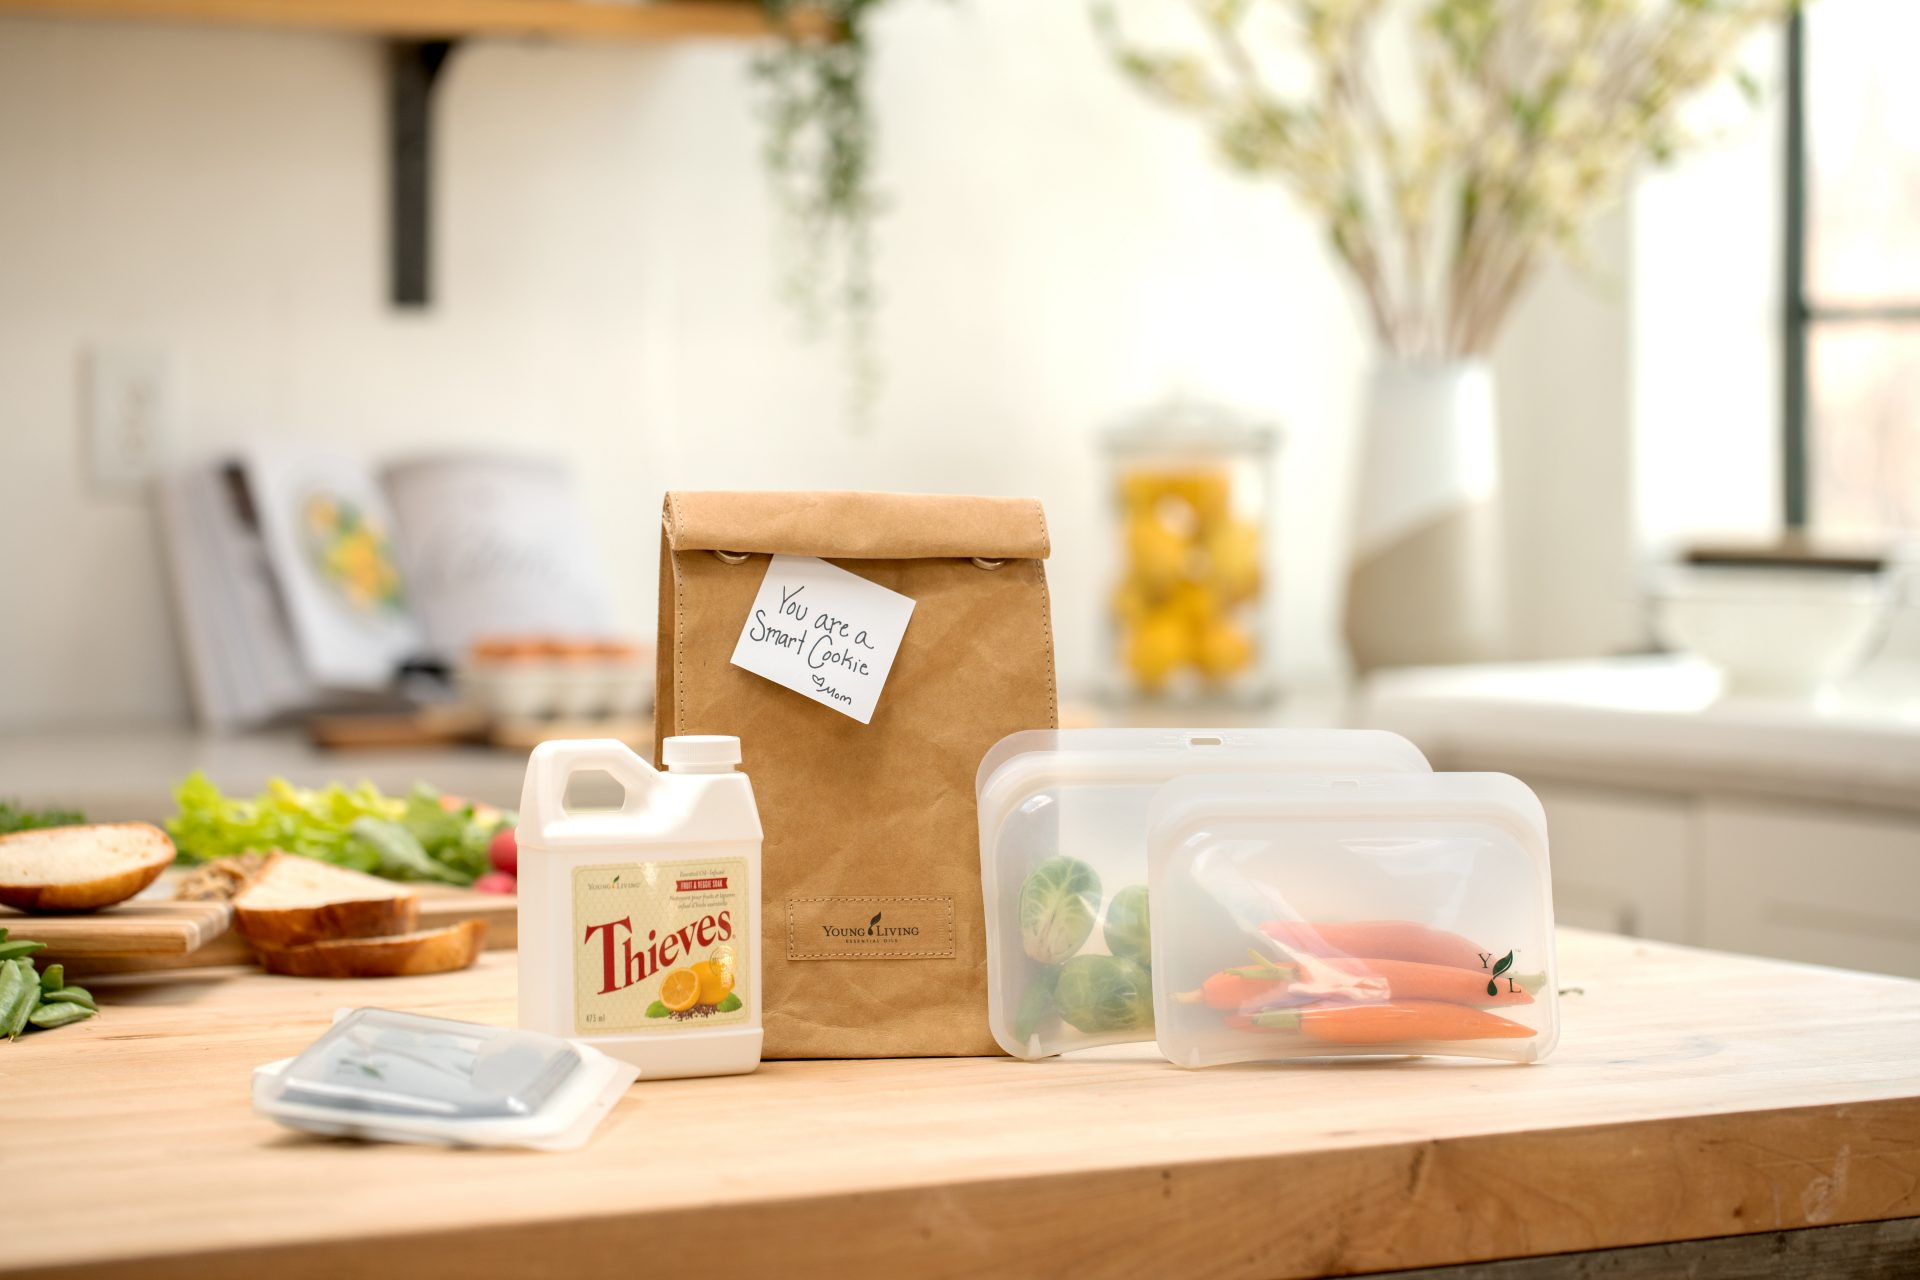 Packed school lunch sitting next to Thieves Fruit & Veggie Soak - Young Living Essential Oils